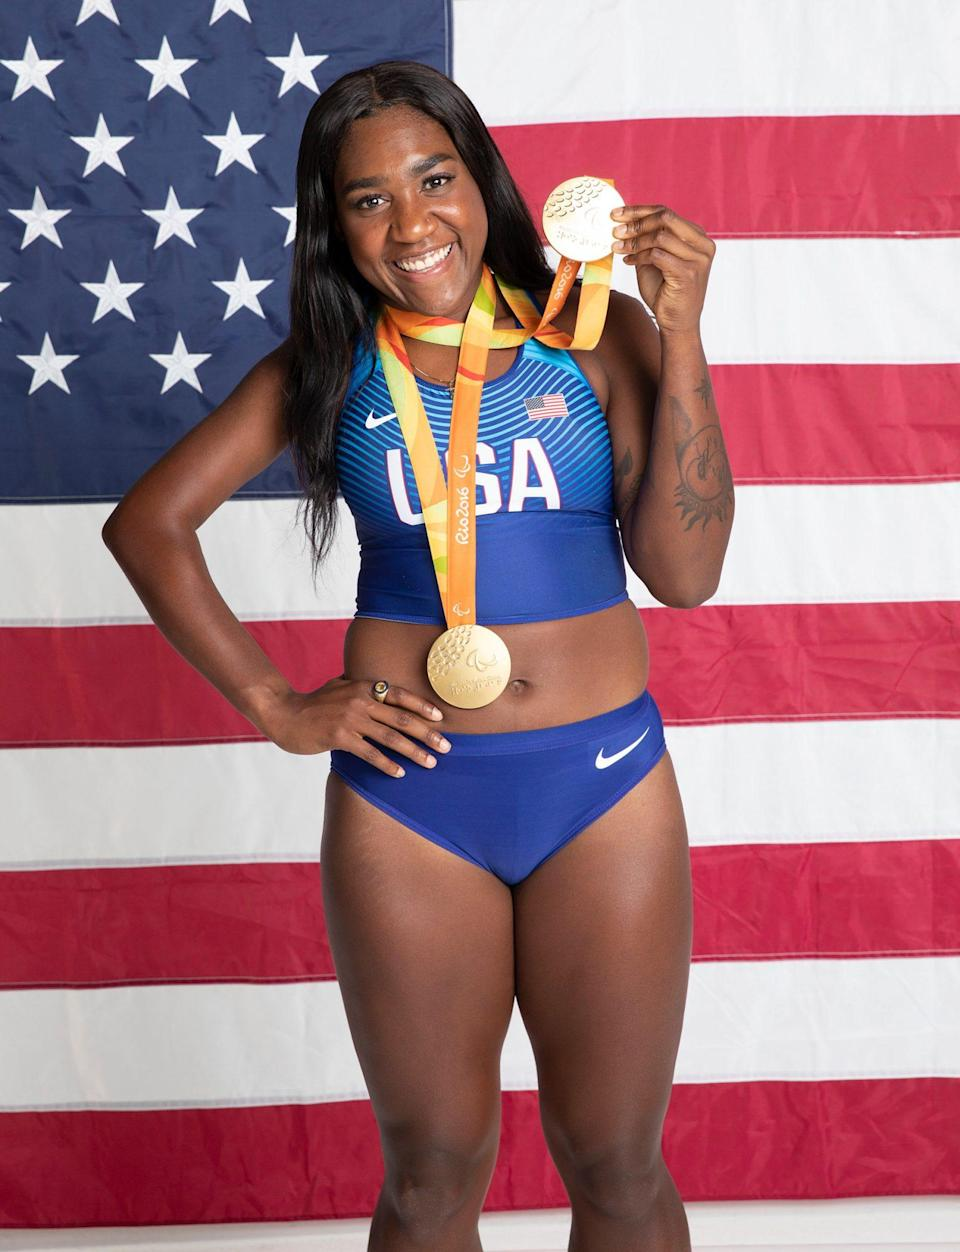 "<p>The track & field Paralympic athlete, 24, is already a two-time gold medalist in the 100m and 200m events. Young was born with a brachial plexus injury that caused nerve damage and limited mobility to her right shoulder. She first started competing in high school and has been candid about struggling with her mental health and a previous suicide attempt. ""What got me through was focusing on my love for athletics,"" <a href=""https://www.paralympic.org/deja-young"" rel=""nofollow noopener"" target=""_blank"" data-ylk=""slk:she previously told"" class=""link rapid-noclick-resp"">she previously told</a> the International Paralympic Committee.</p>"